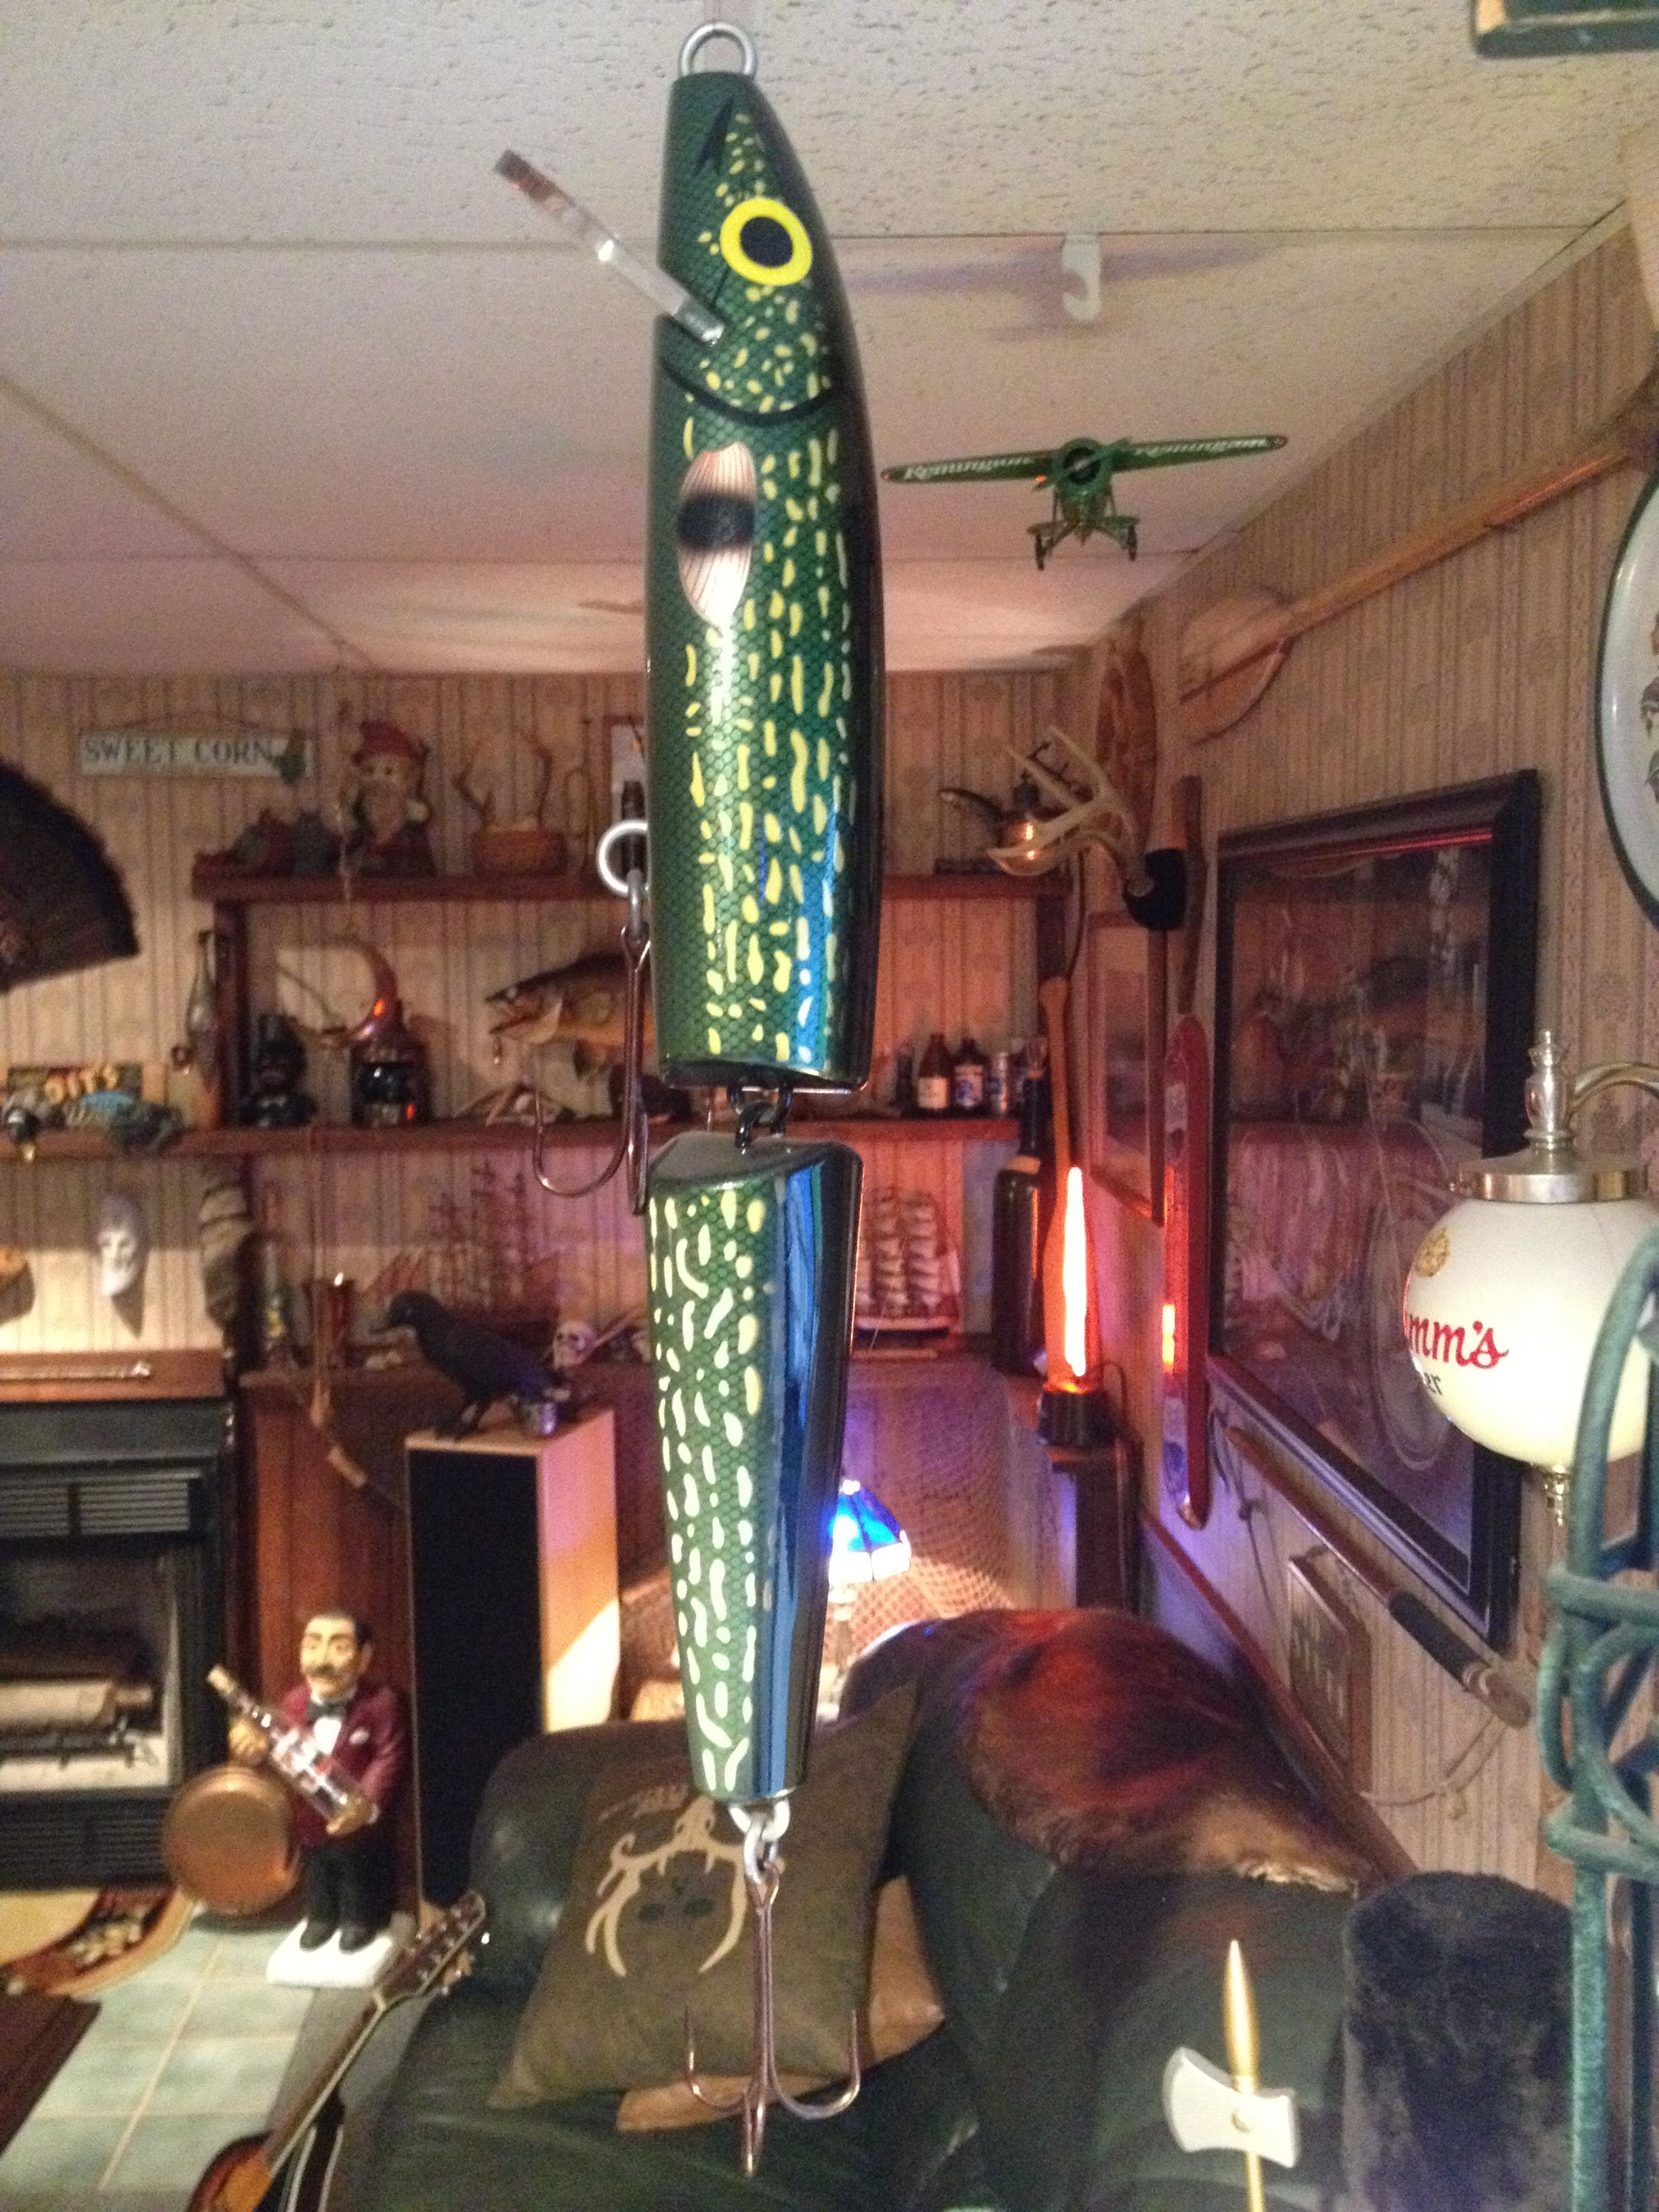 Giant Rapala lure 60.00 Man cave items and oddities